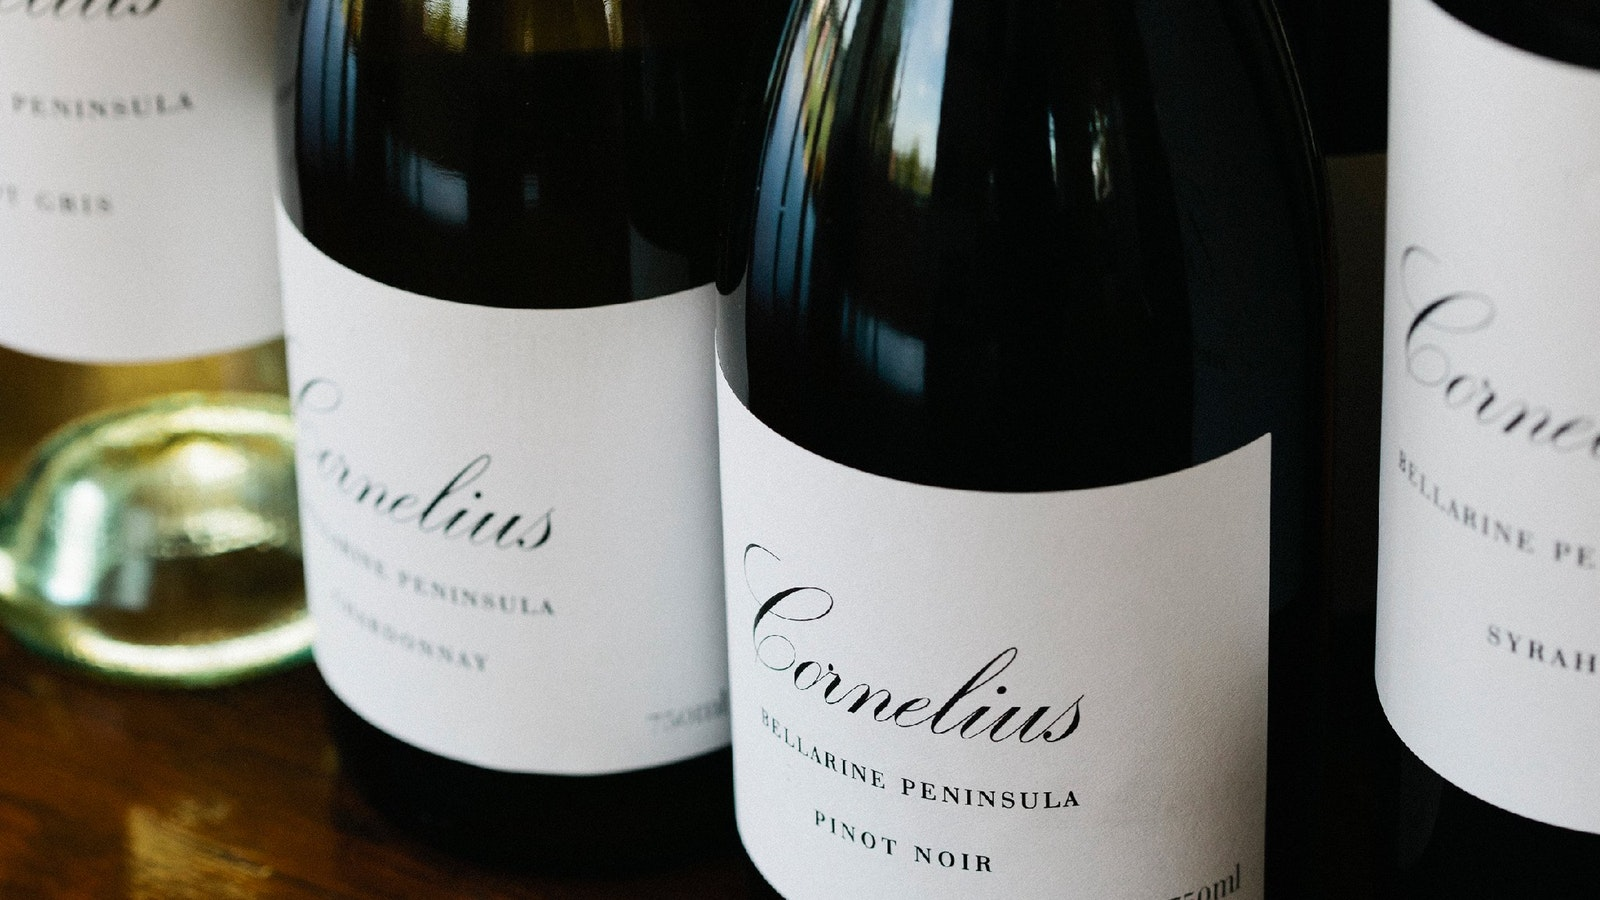 Scotchmans Hill's Single Vineyard Cornelius Wines